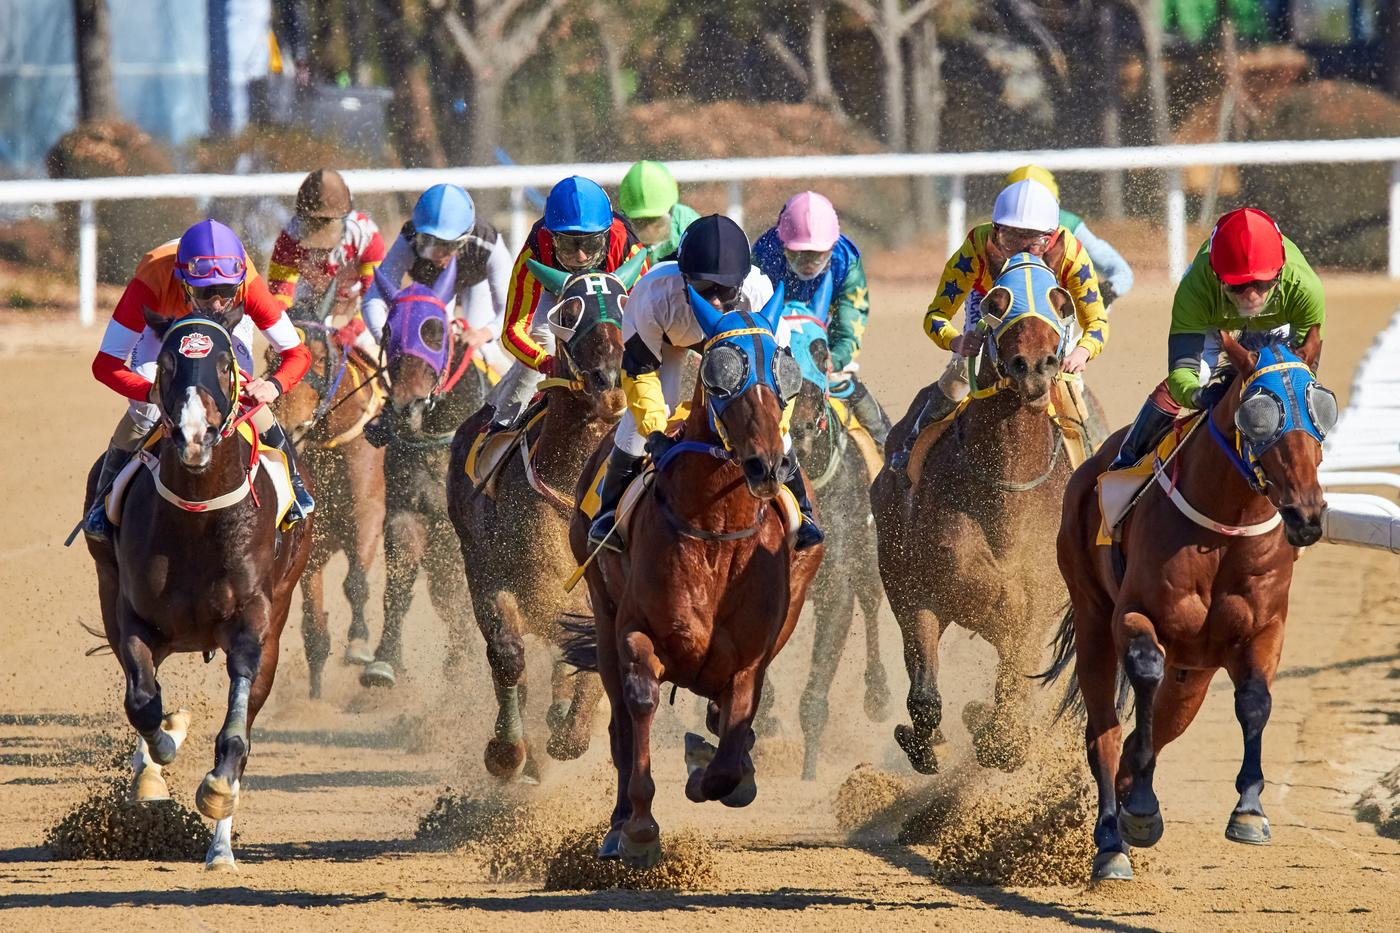 Horses racing on dirt